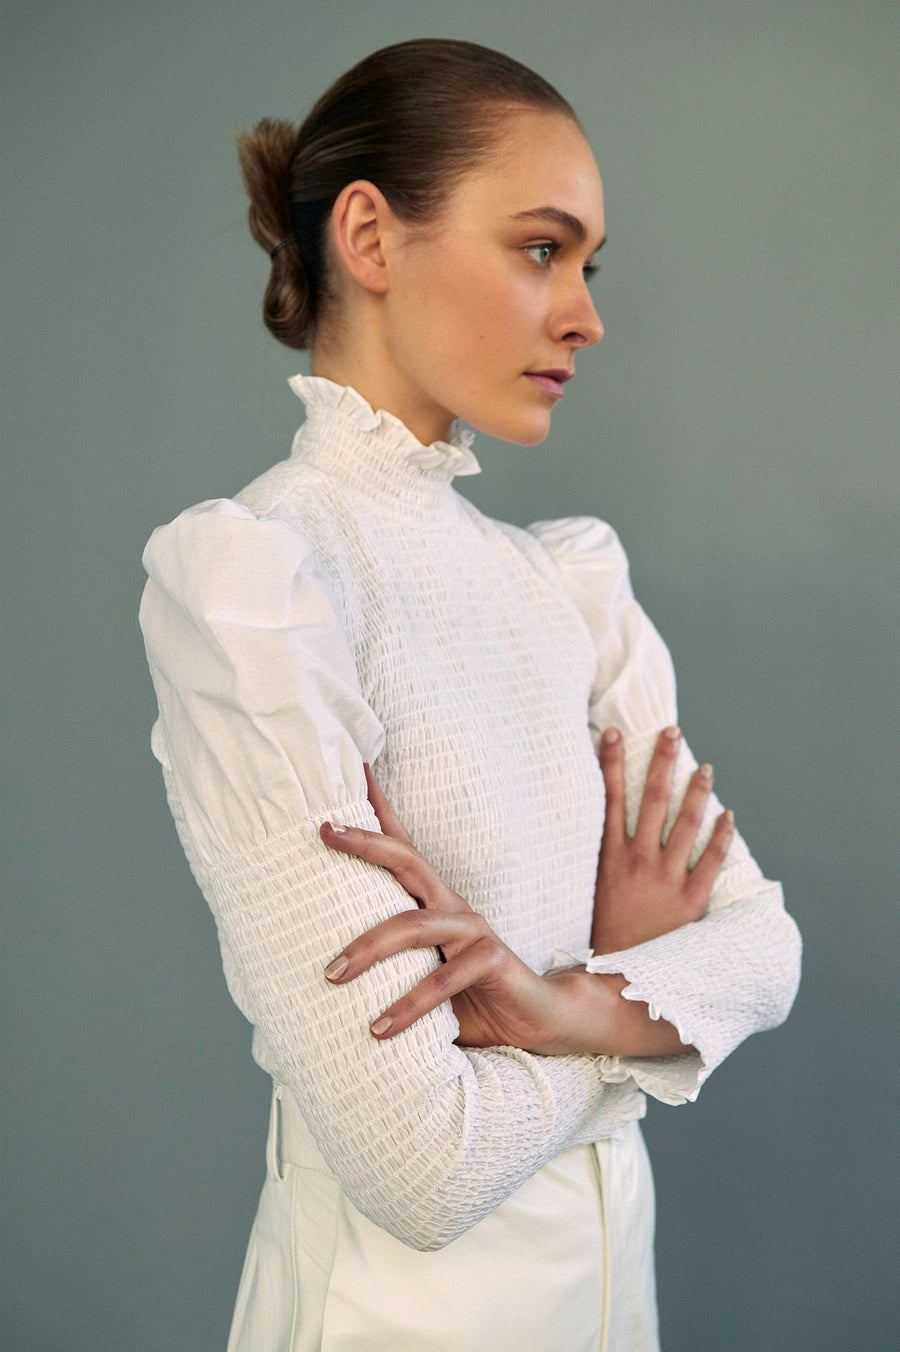 Be a modern day victorian with this fully smocked cotton blouse that features a high neck and puff sleeve